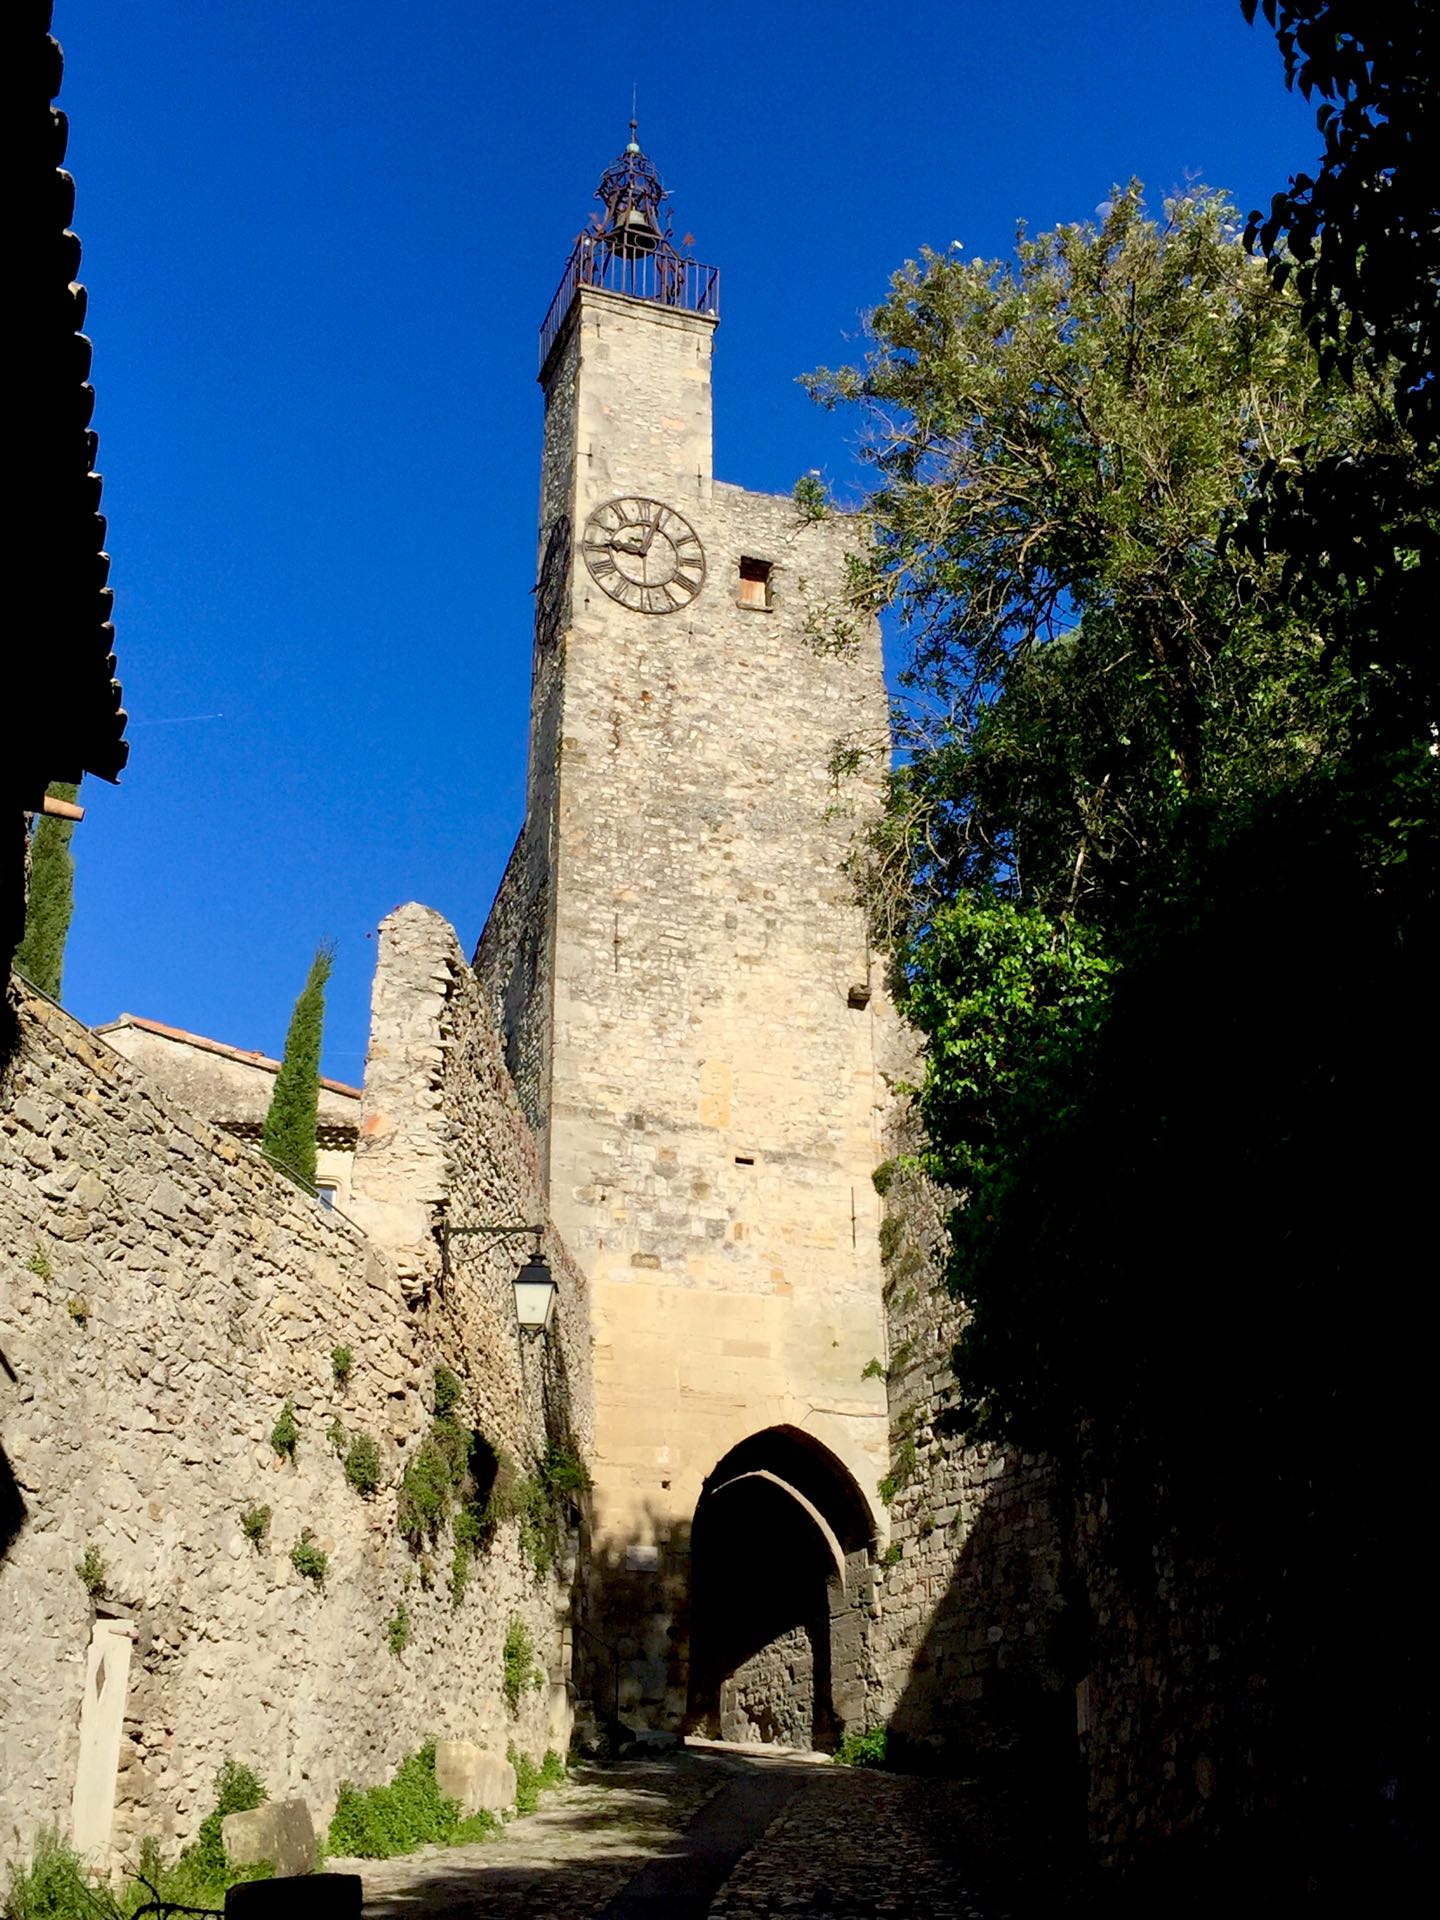 Along the streets of the fortified town